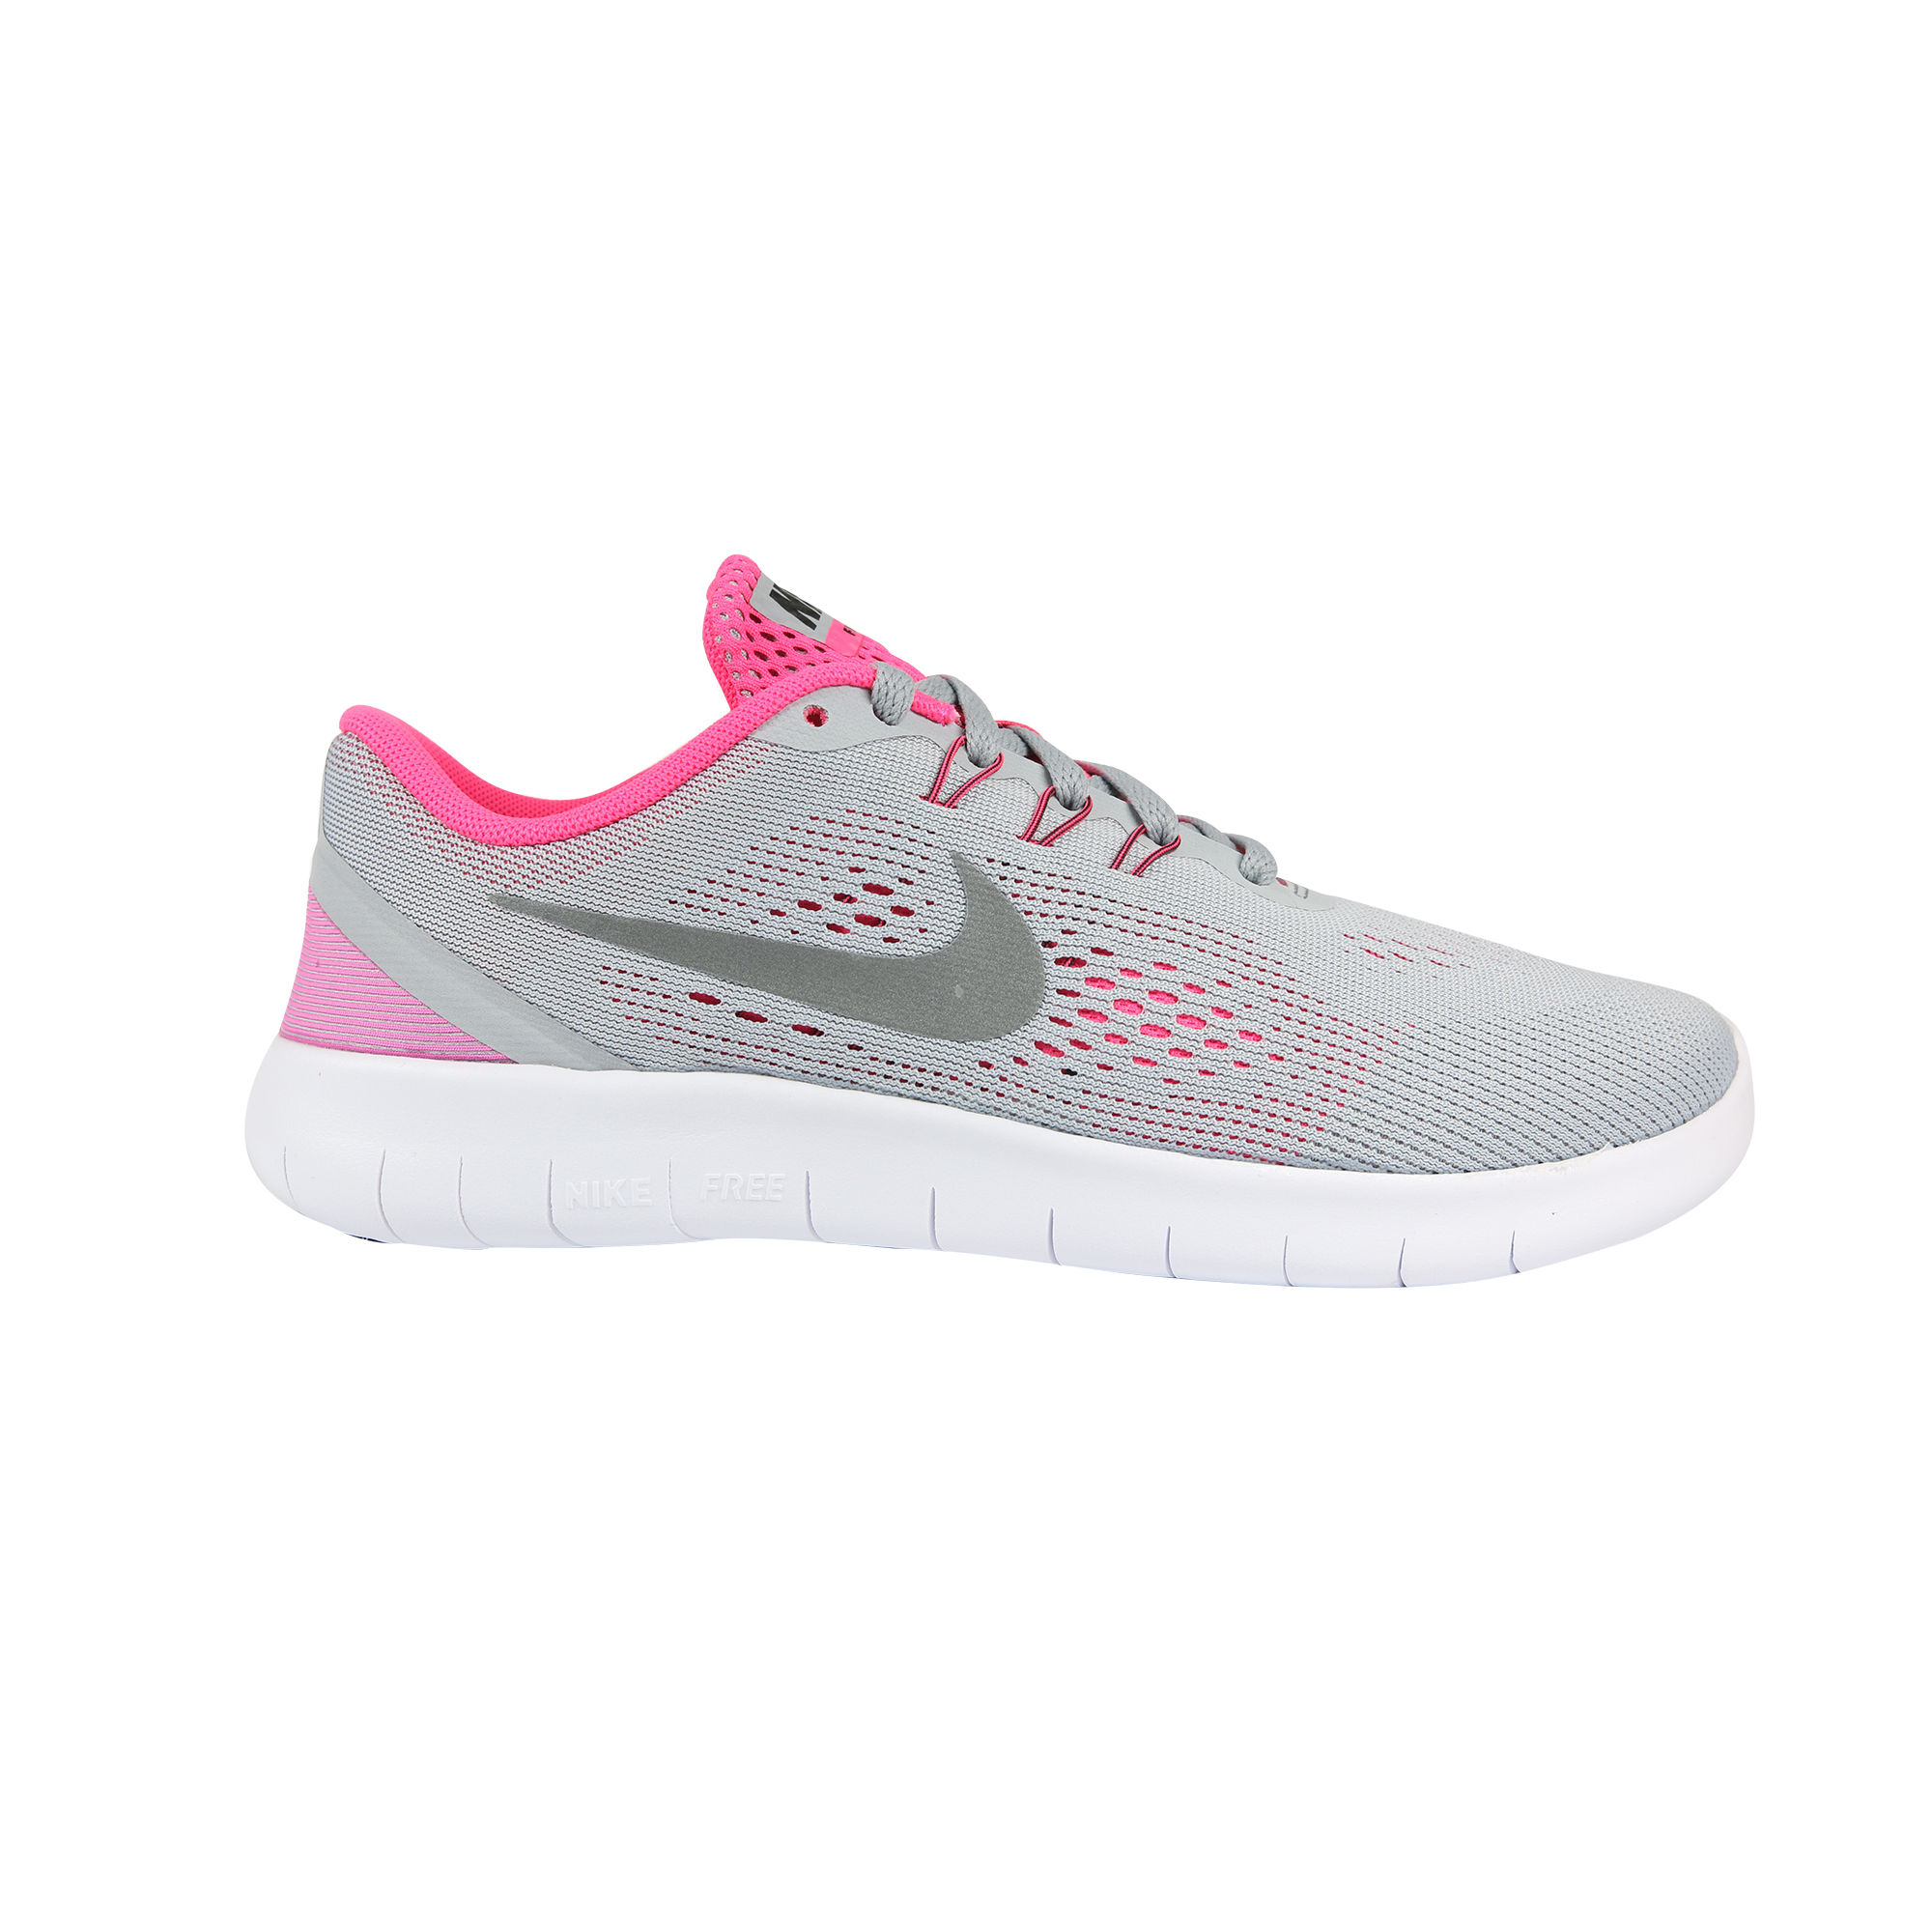 nike free rn run gs laufschuhe sportschuhe sneaker kinder damen 833989 ebay. Black Bedroom Furniture Sets. Home Design Ideas